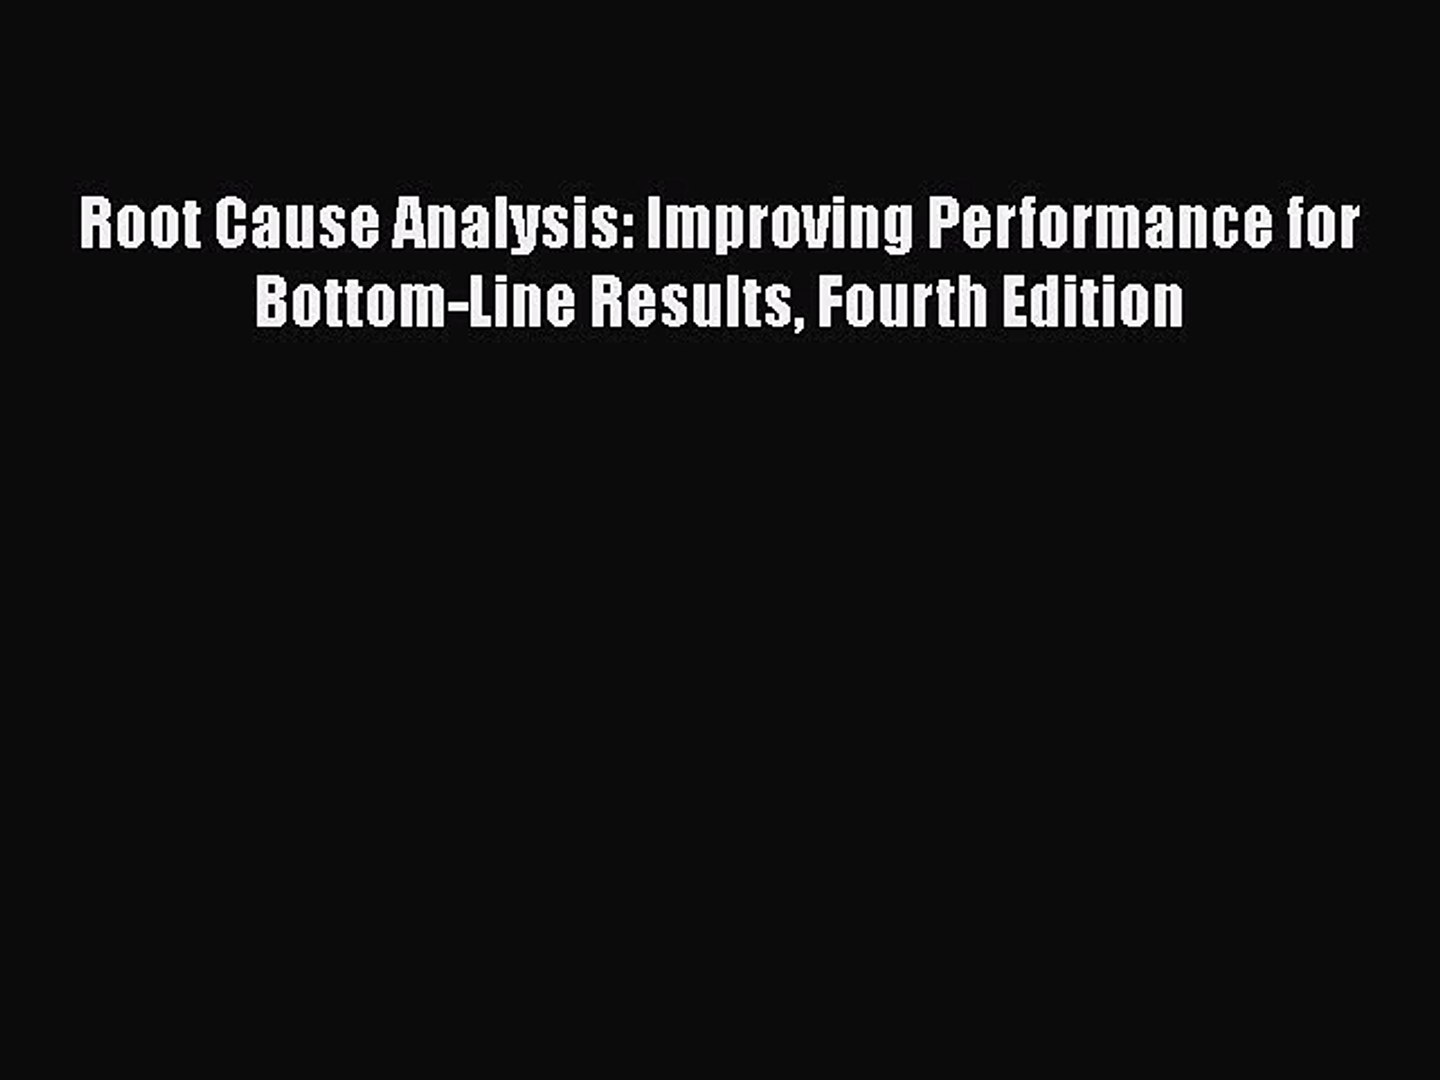 Read Root Cause Analysis: Improving Performance for Bottom-Line Results Fourth Edition Ebook